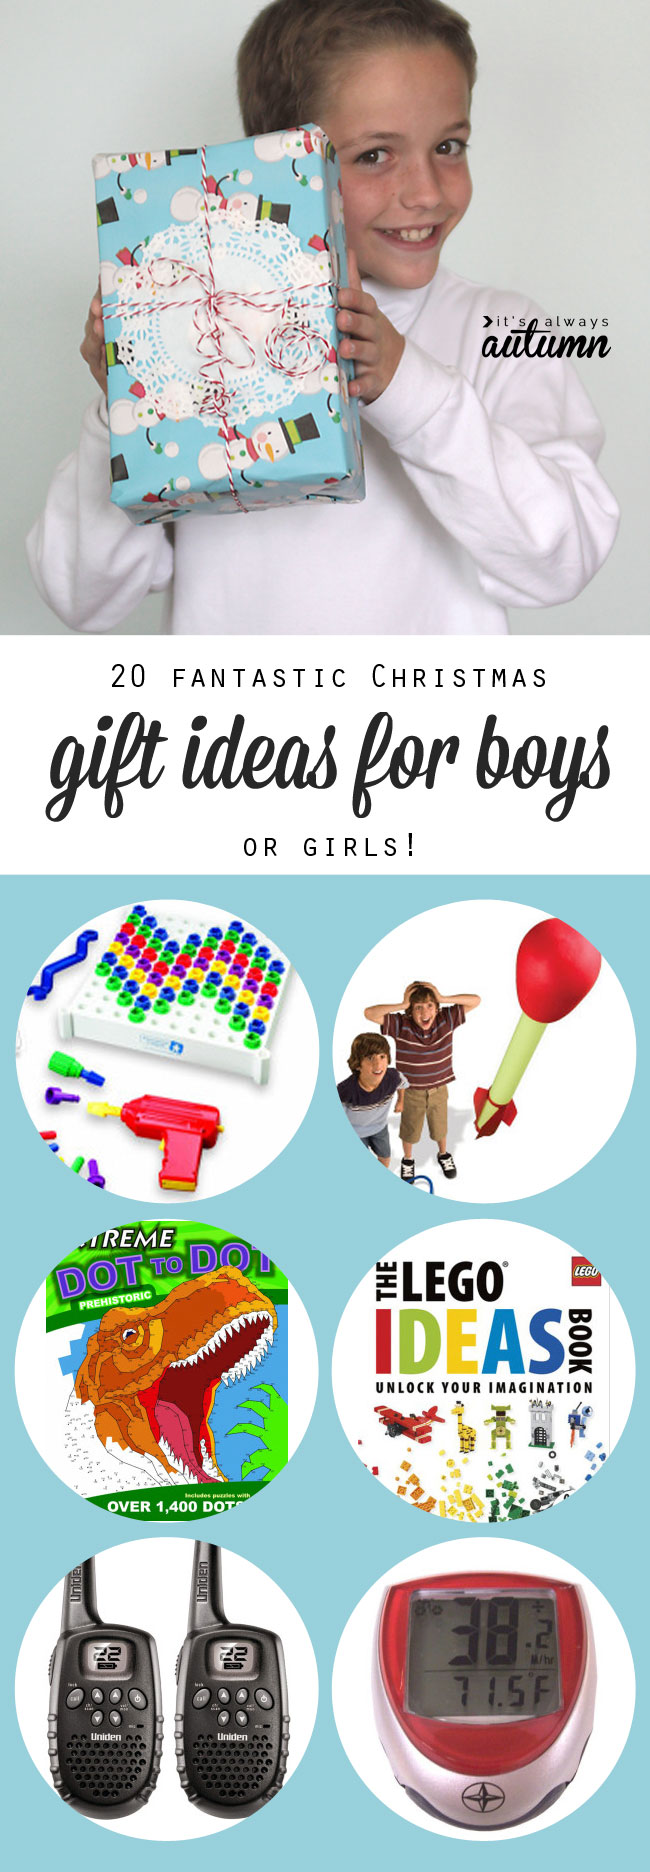 20 Best Christmas Gift Ideas For Boys It 39 S Always Autumn